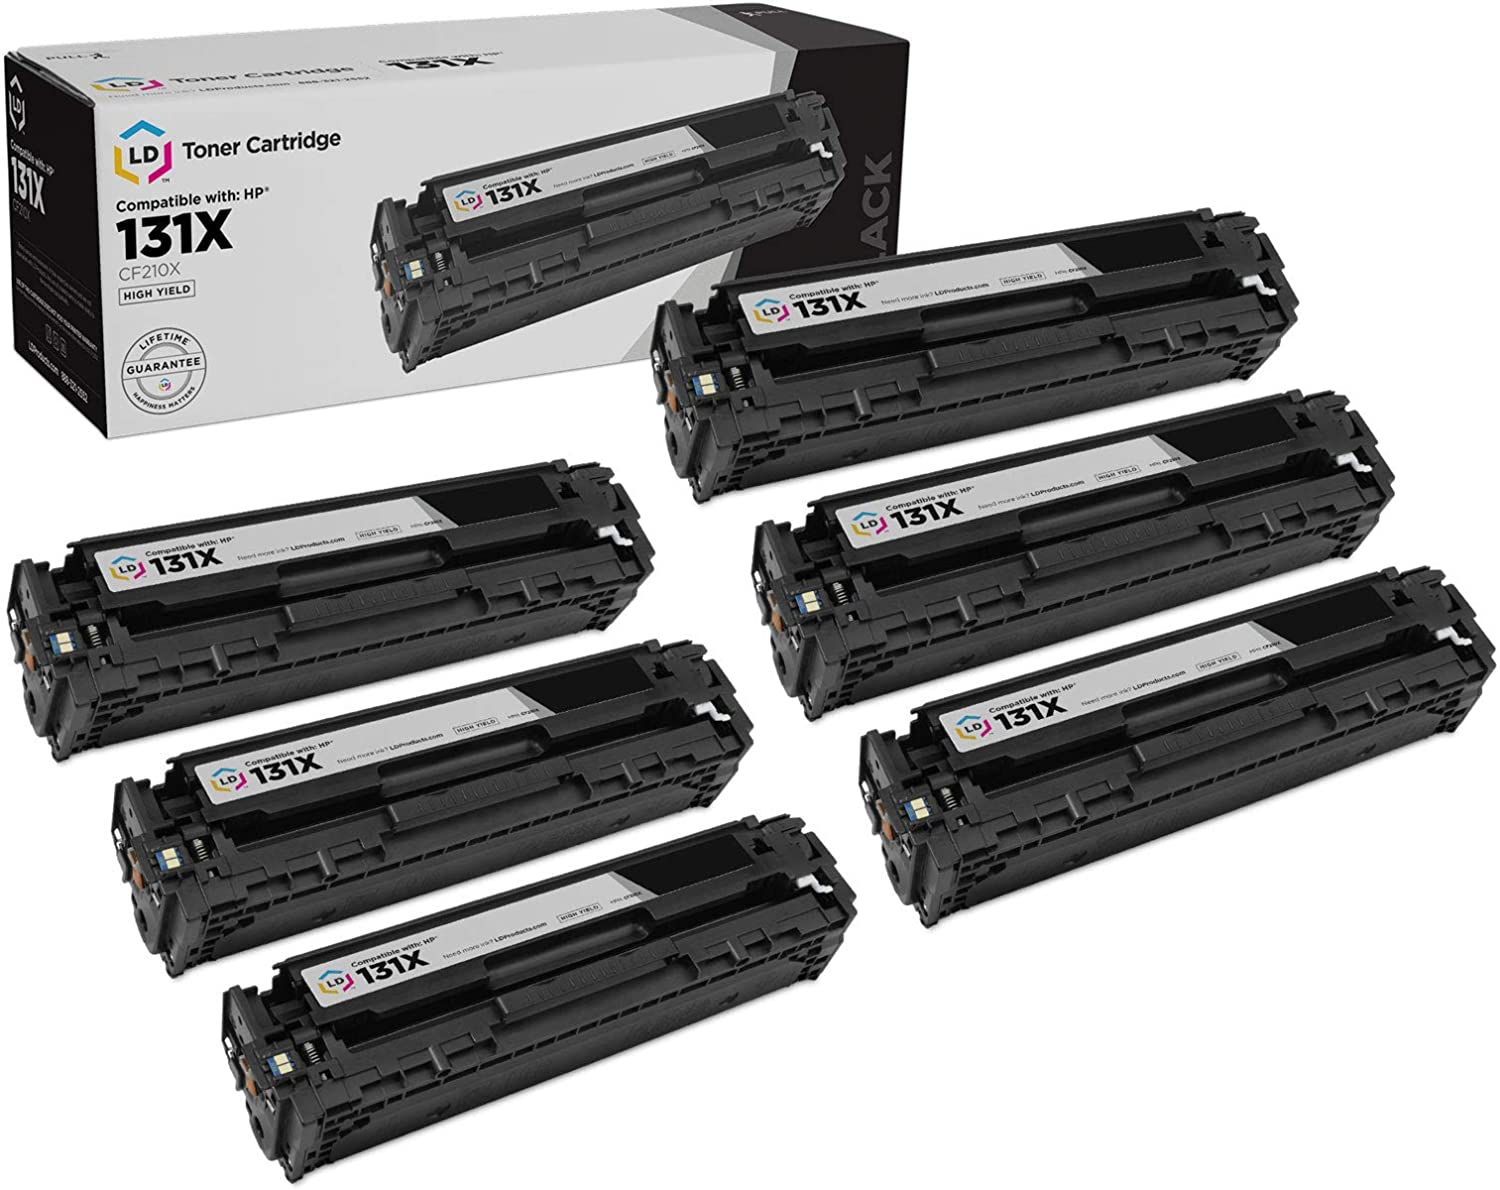 LD Remanufactured Toner Cartridge Replacement for HP 131X CF210X High Yield (Black, 6-Pack)